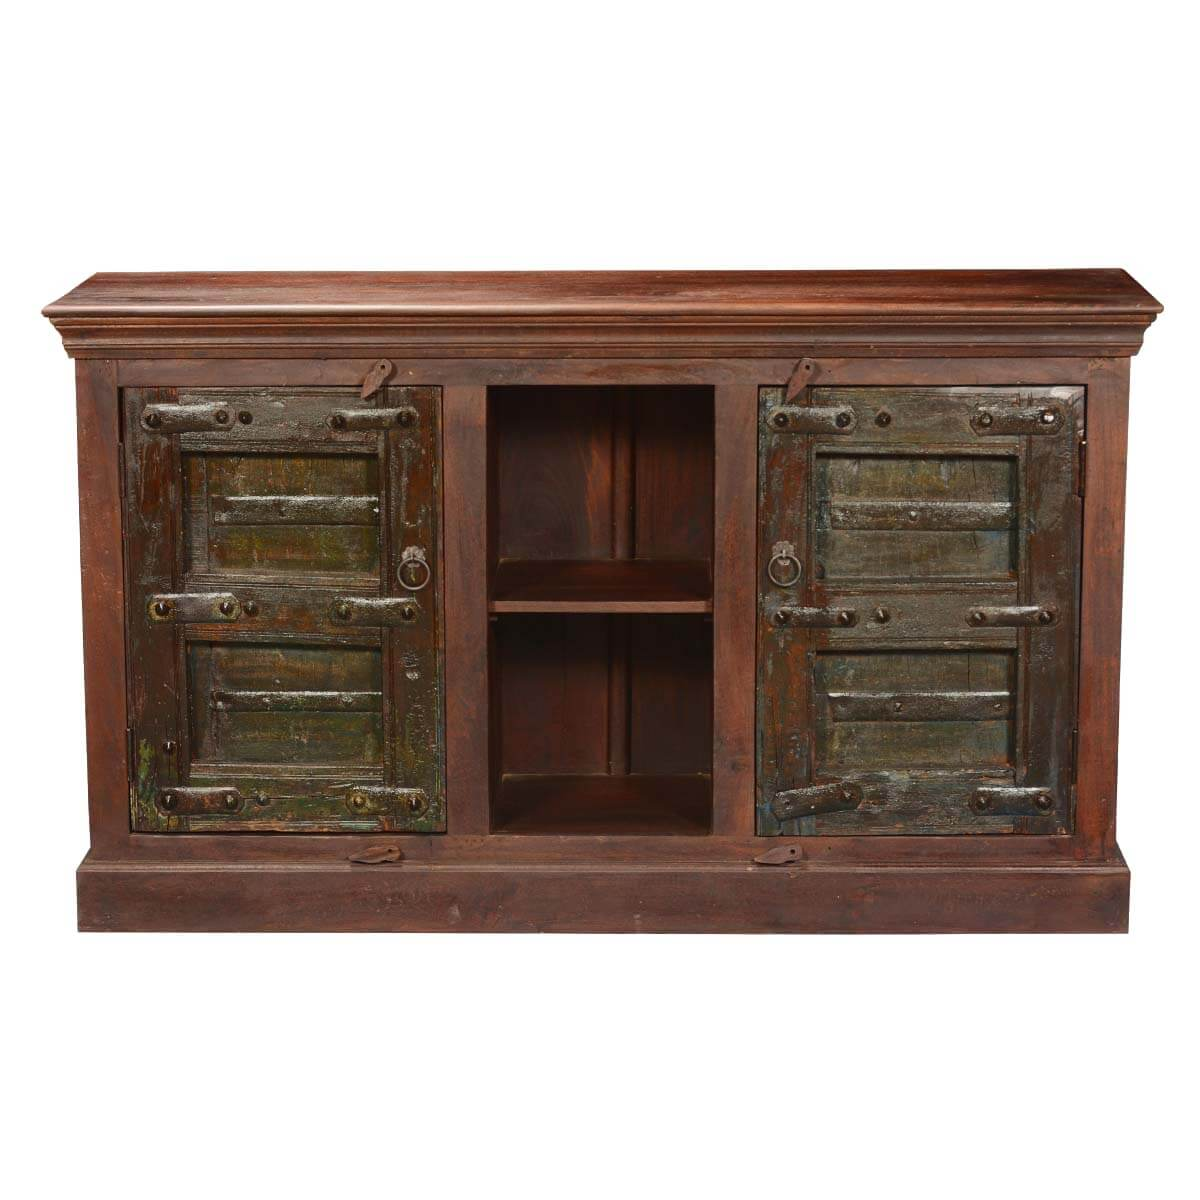 Gothic Gates Reclaimed Wood Display Shelves Sideboard Cabinet